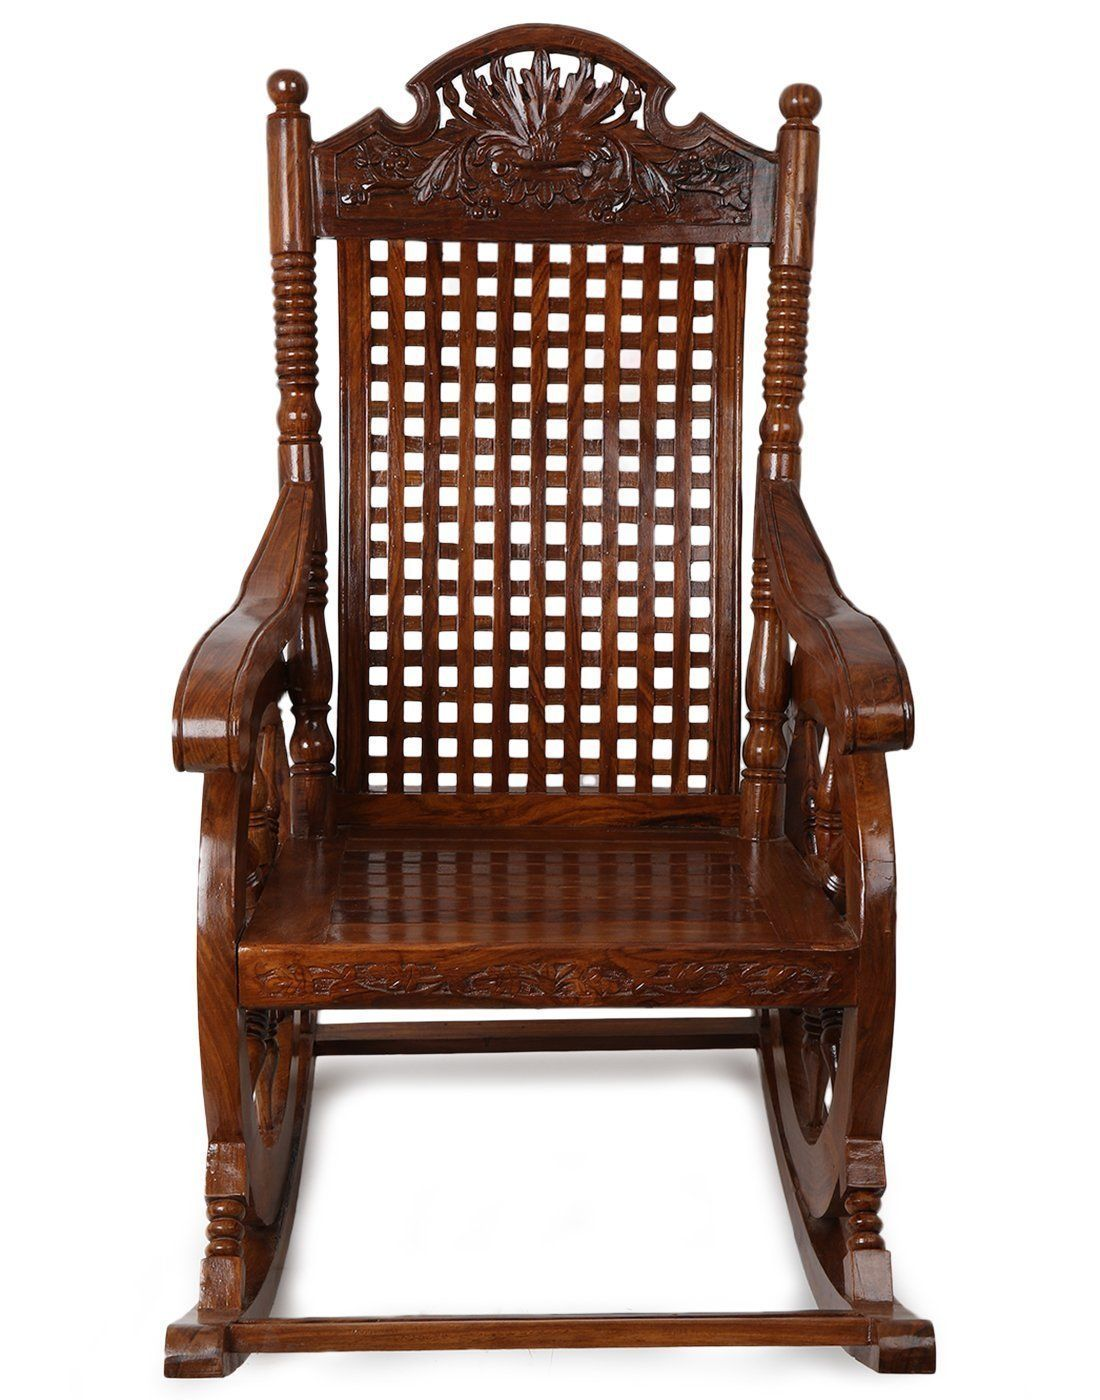 Buy online rocking chair from Craftatoz Visit our store